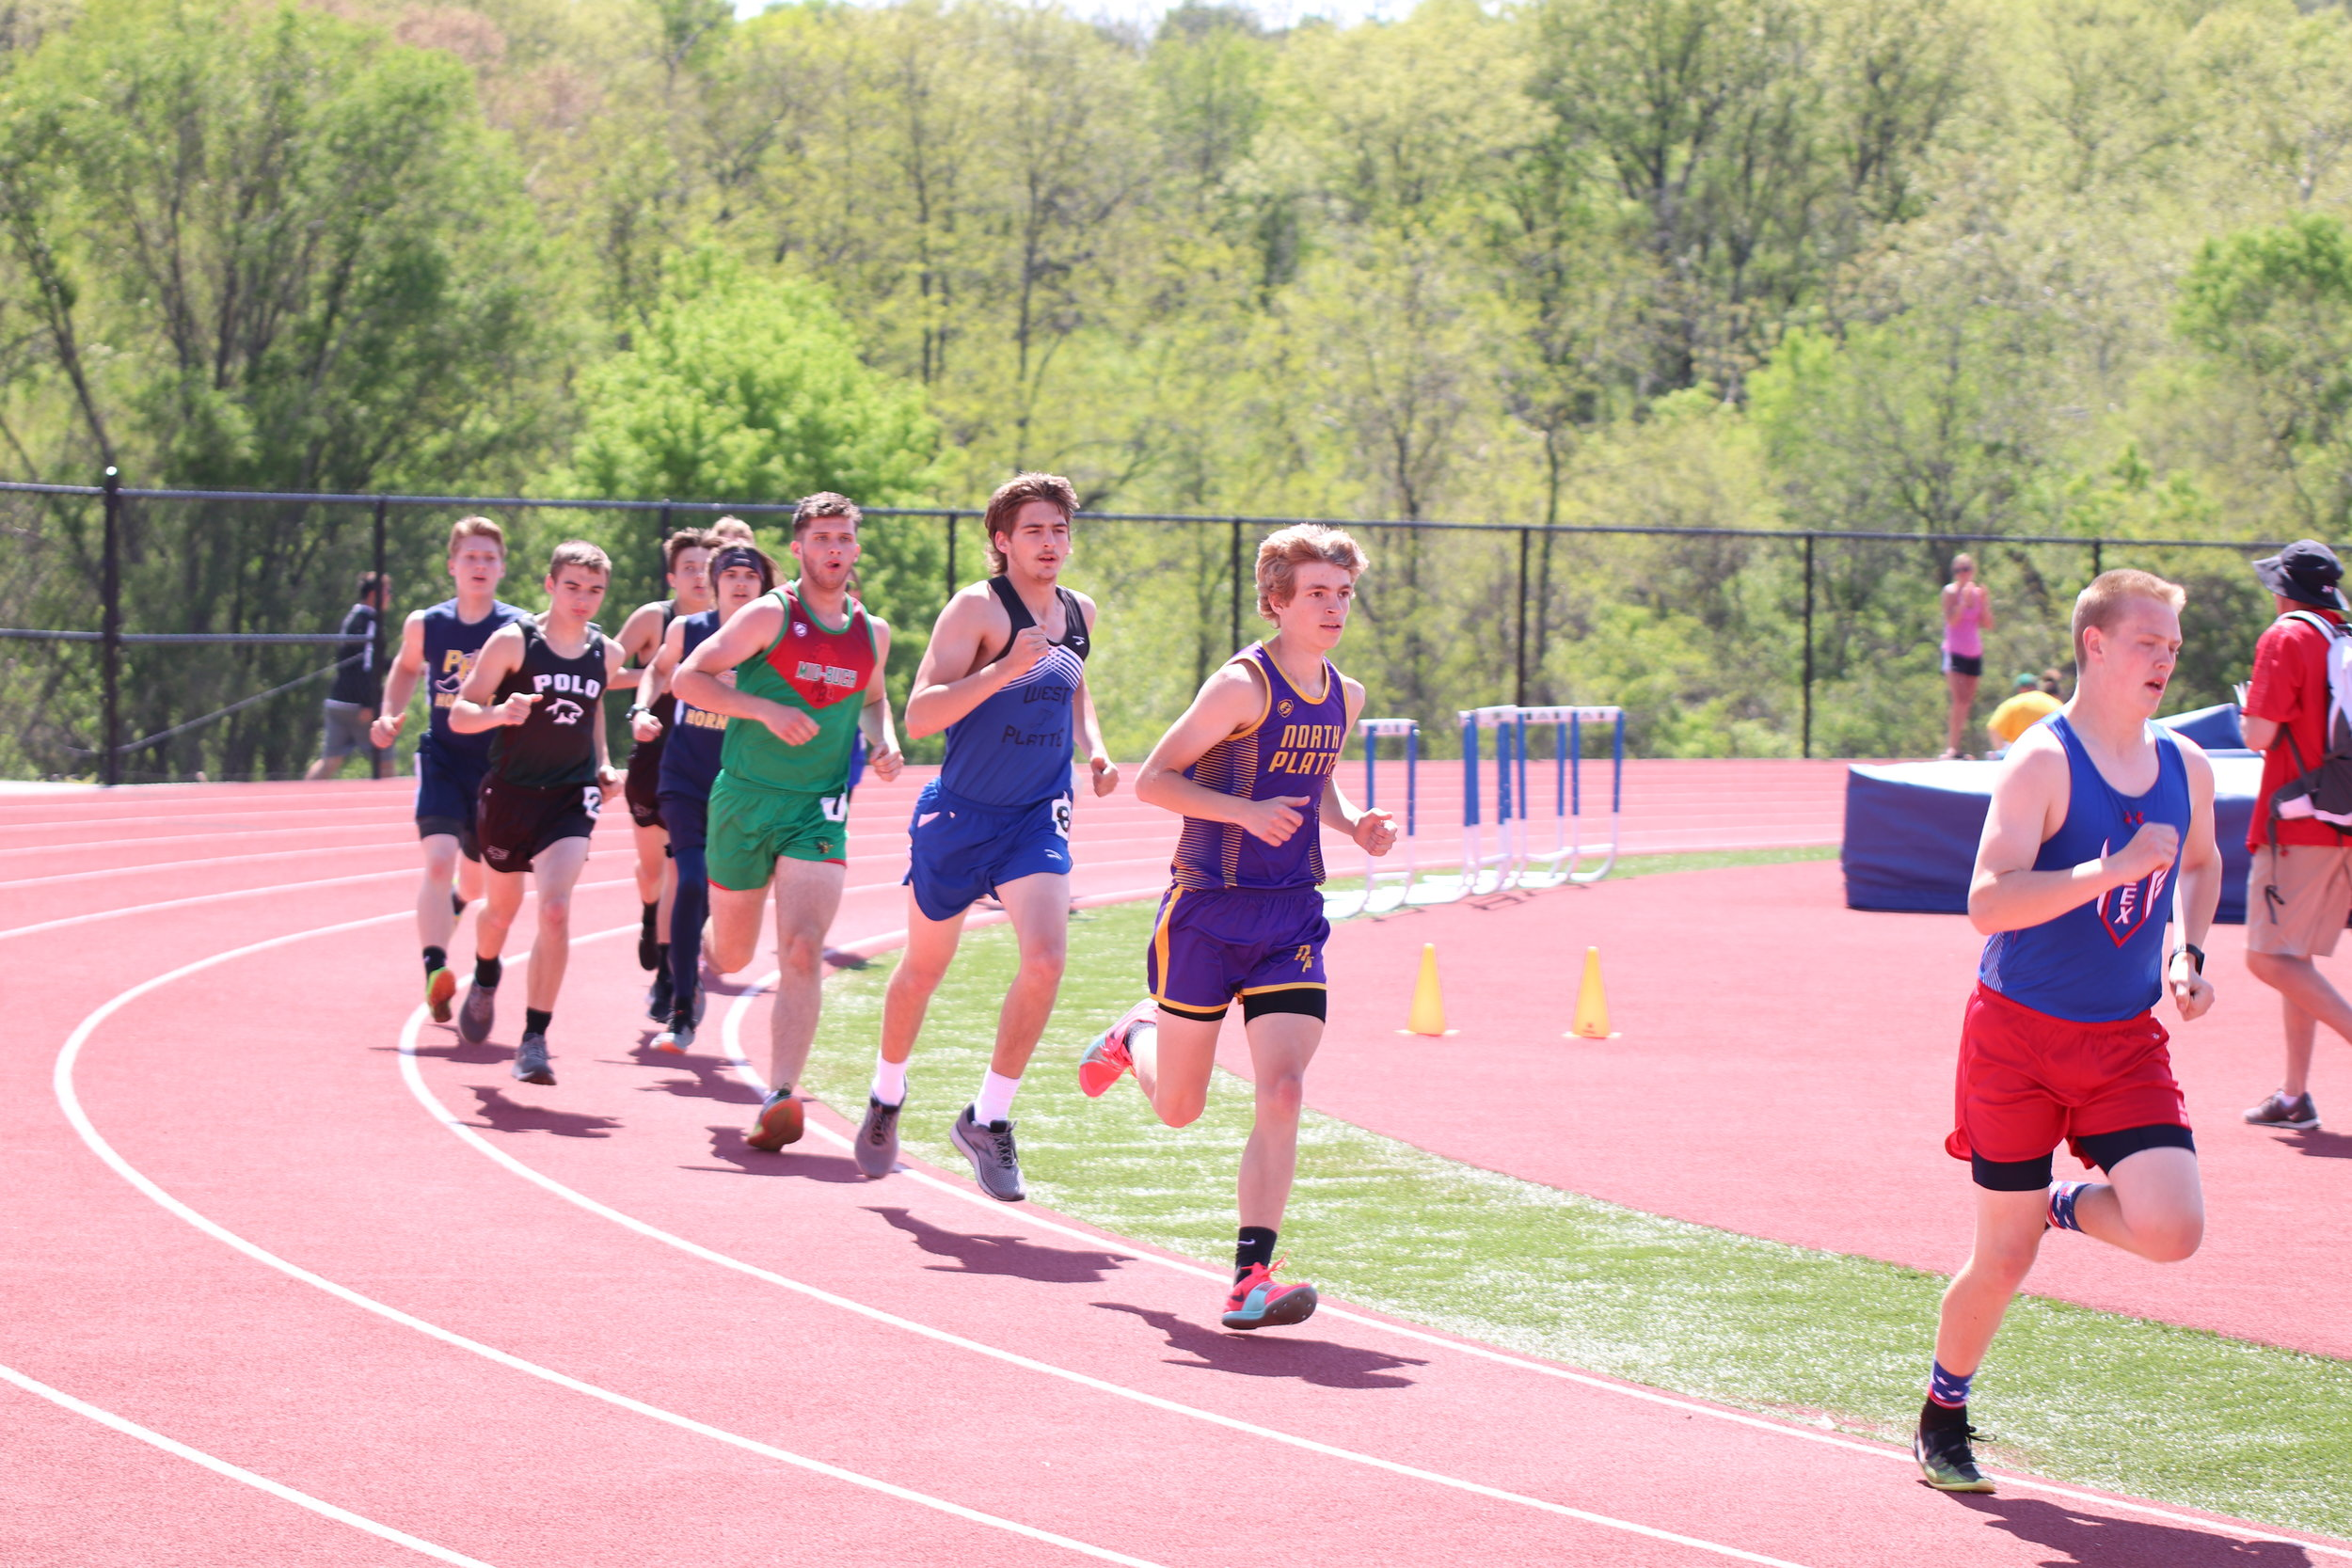 CODY THORN/Citizen photo  North Platte's Zach Lee, second from right, advanced to the sectional meet after a top-four showing at the Class 2 District 7 meet held on Saturday, May 4 in Weston.